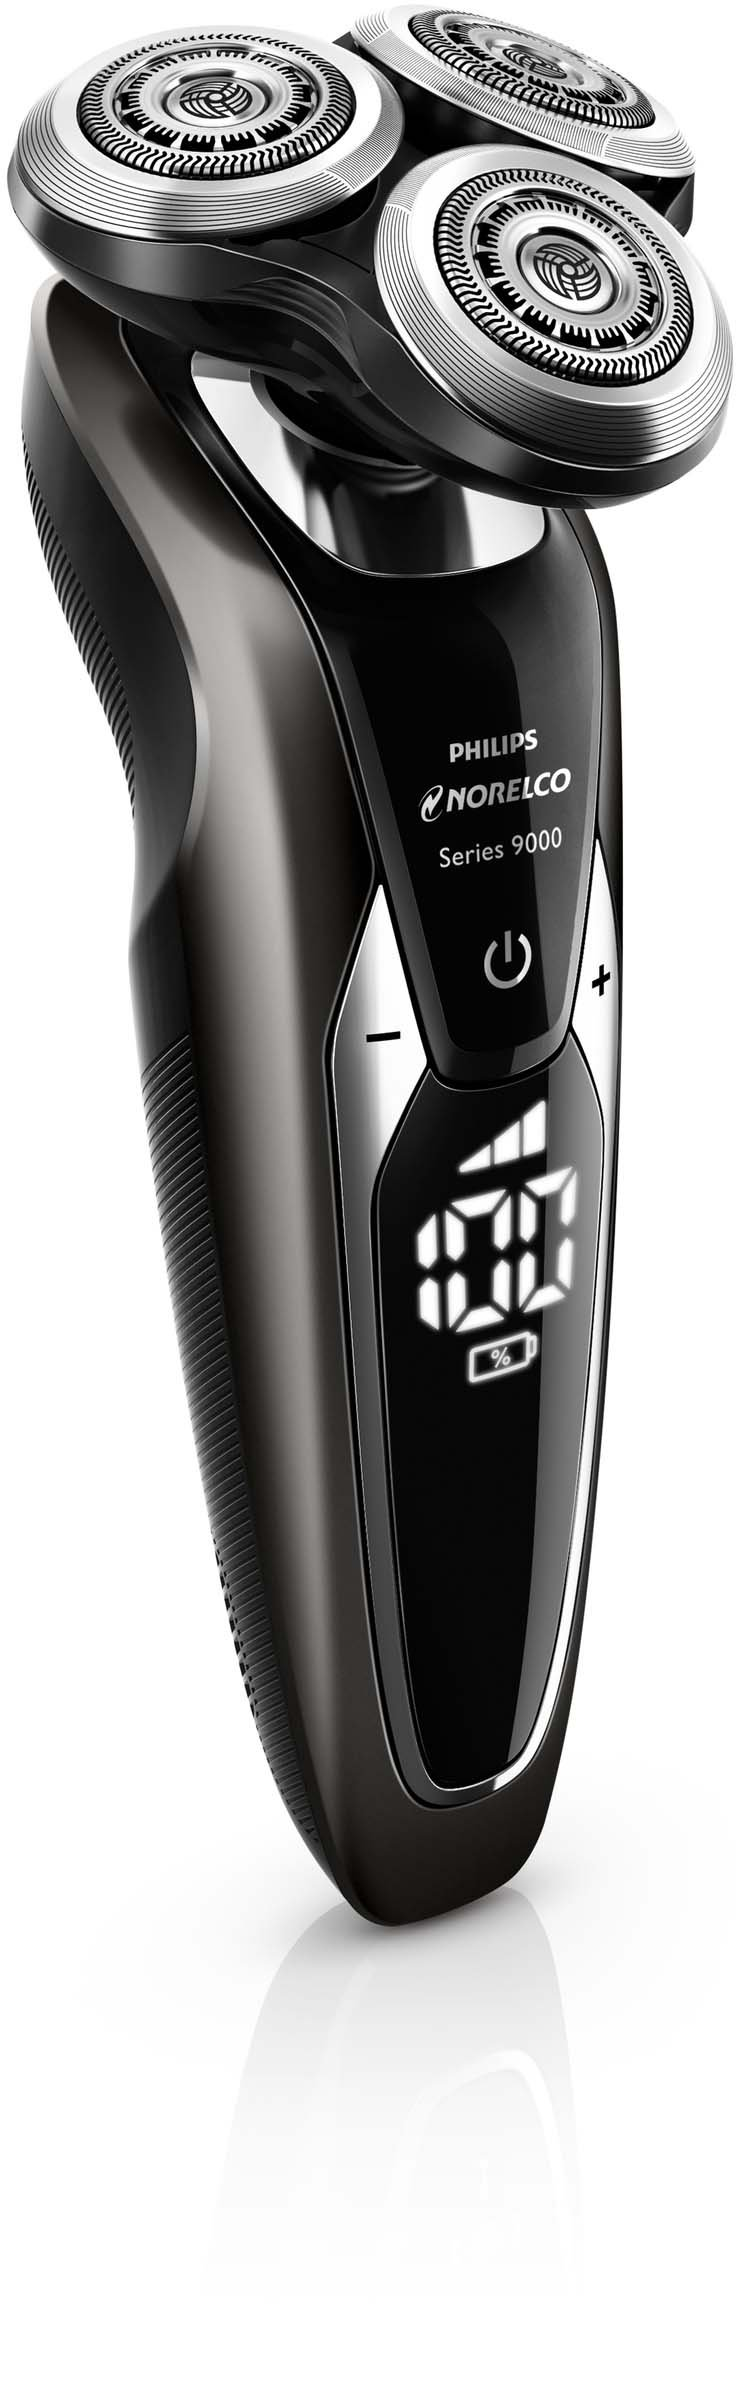 Philips Norelco Electric Shaver 9700, Cleansing Brush by Philips Norelco (Image #3)